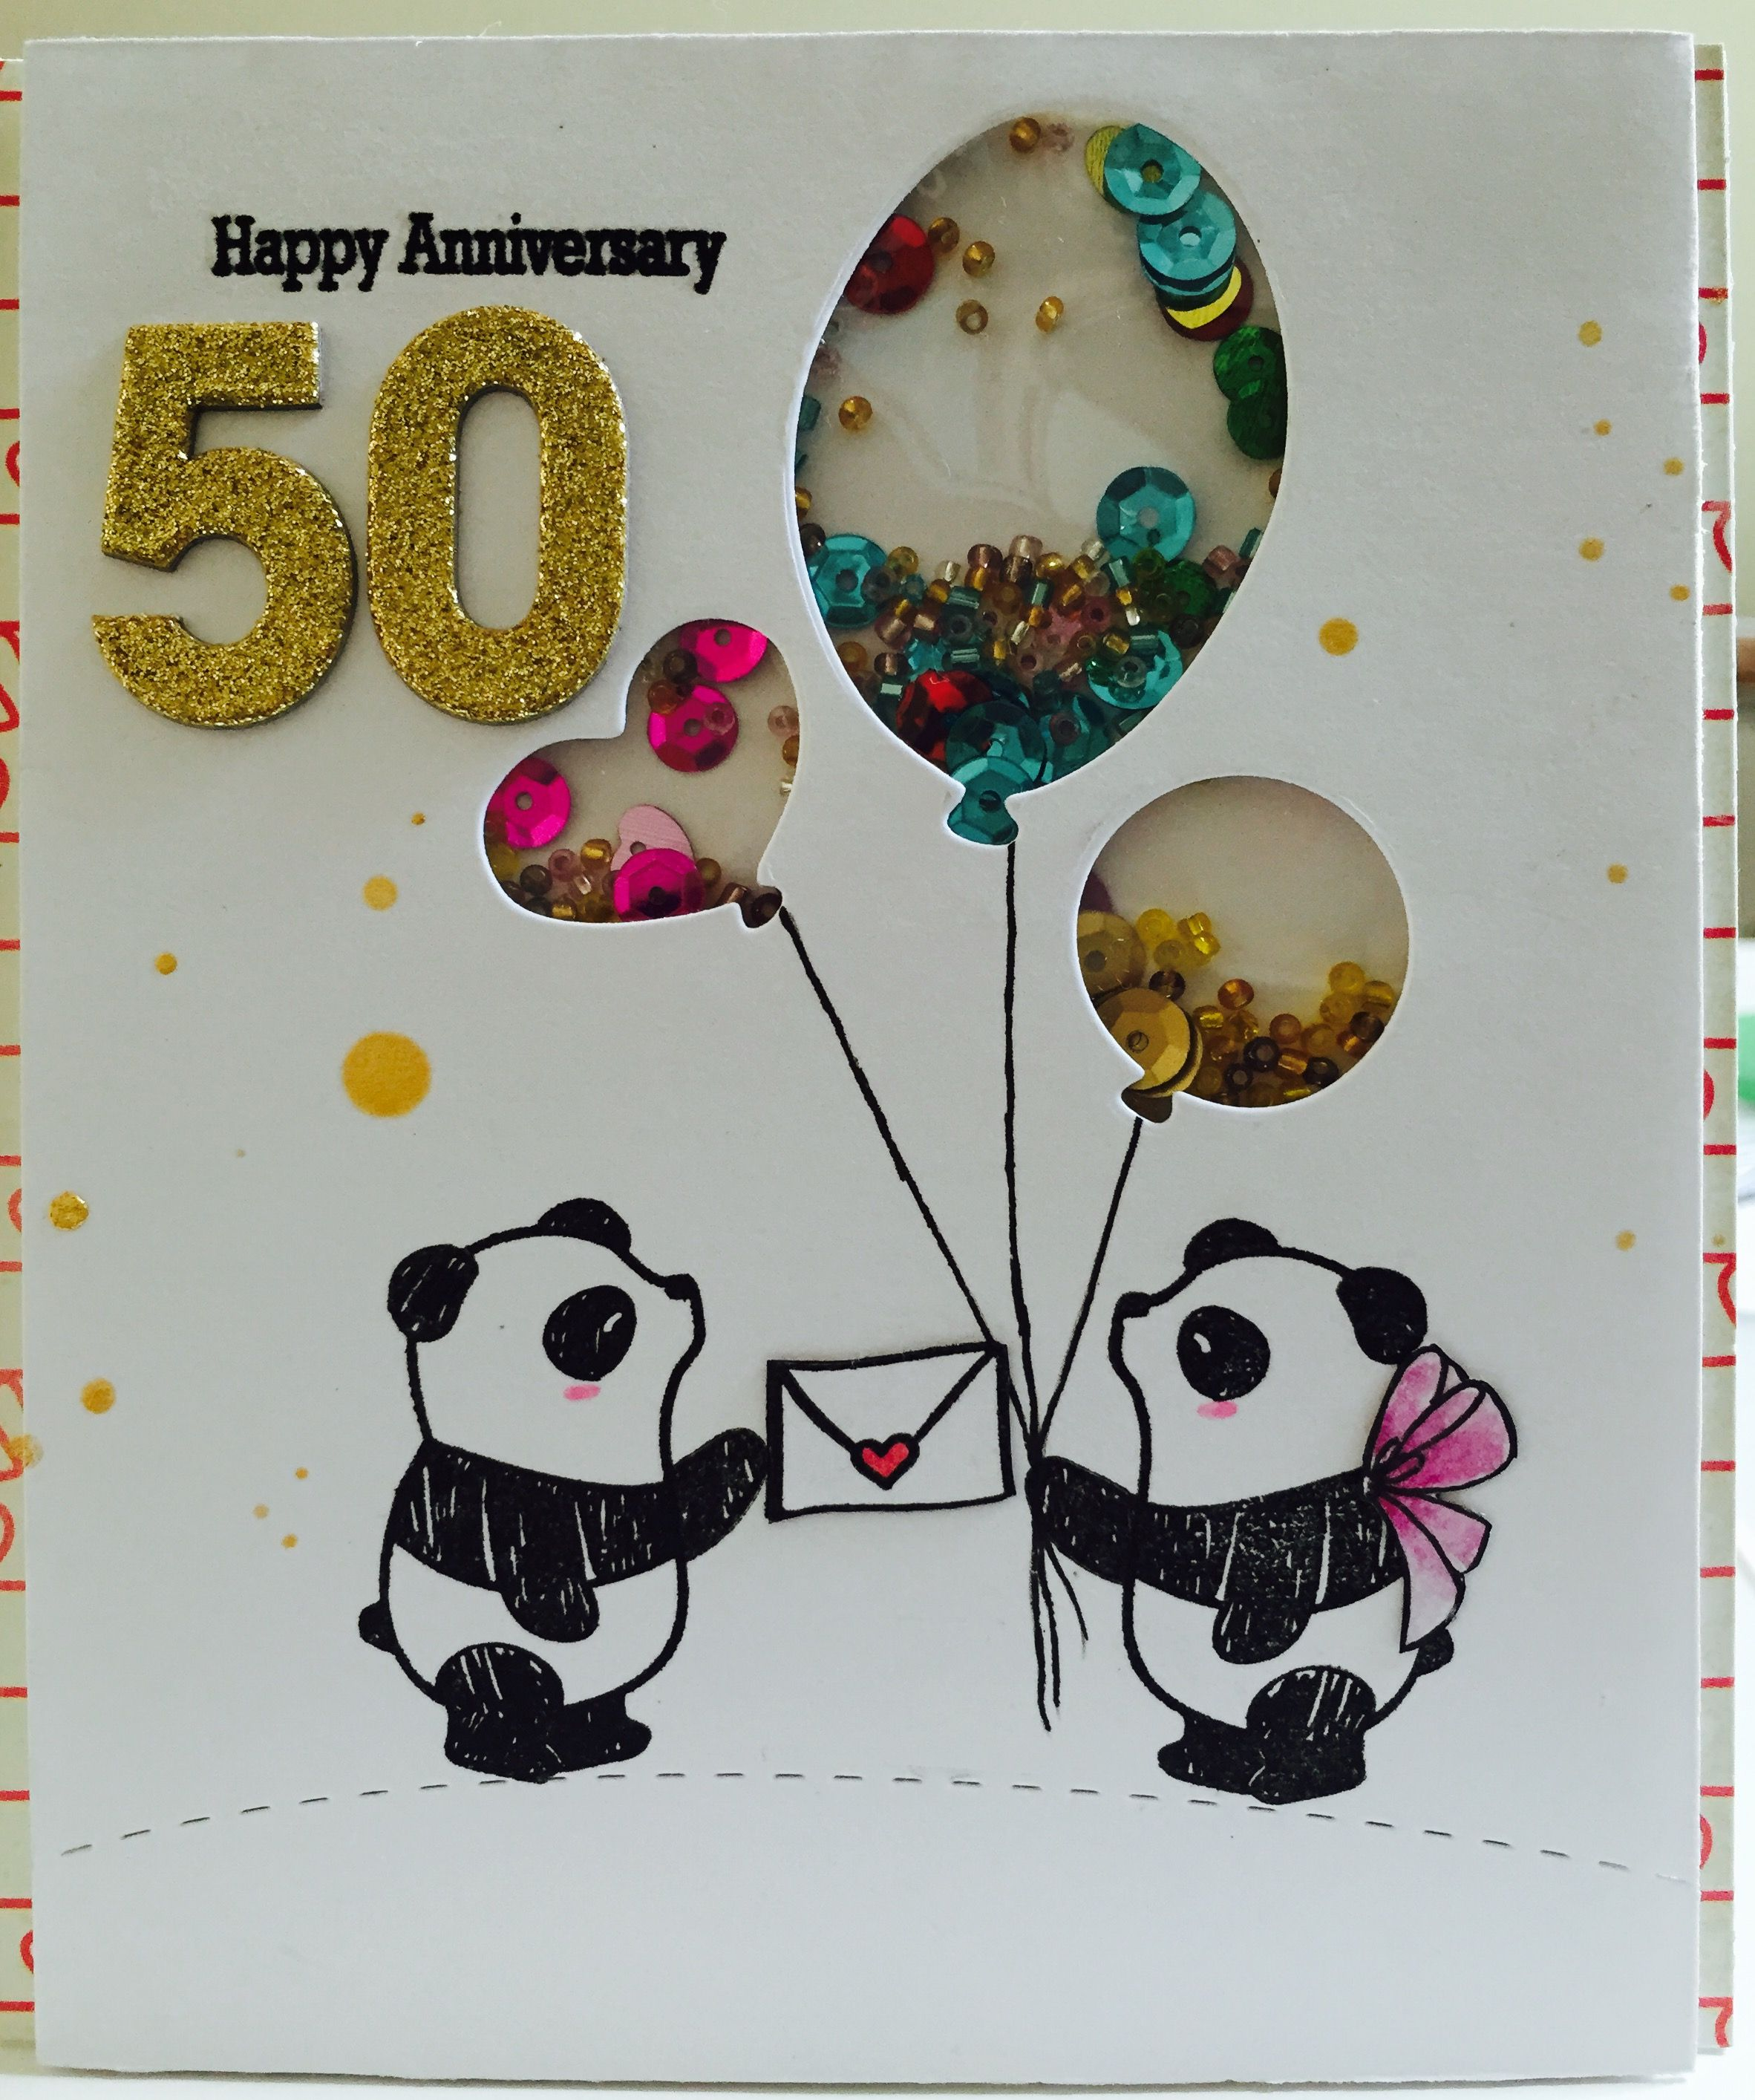 Anniversary card made for my parents. Wishing them happy